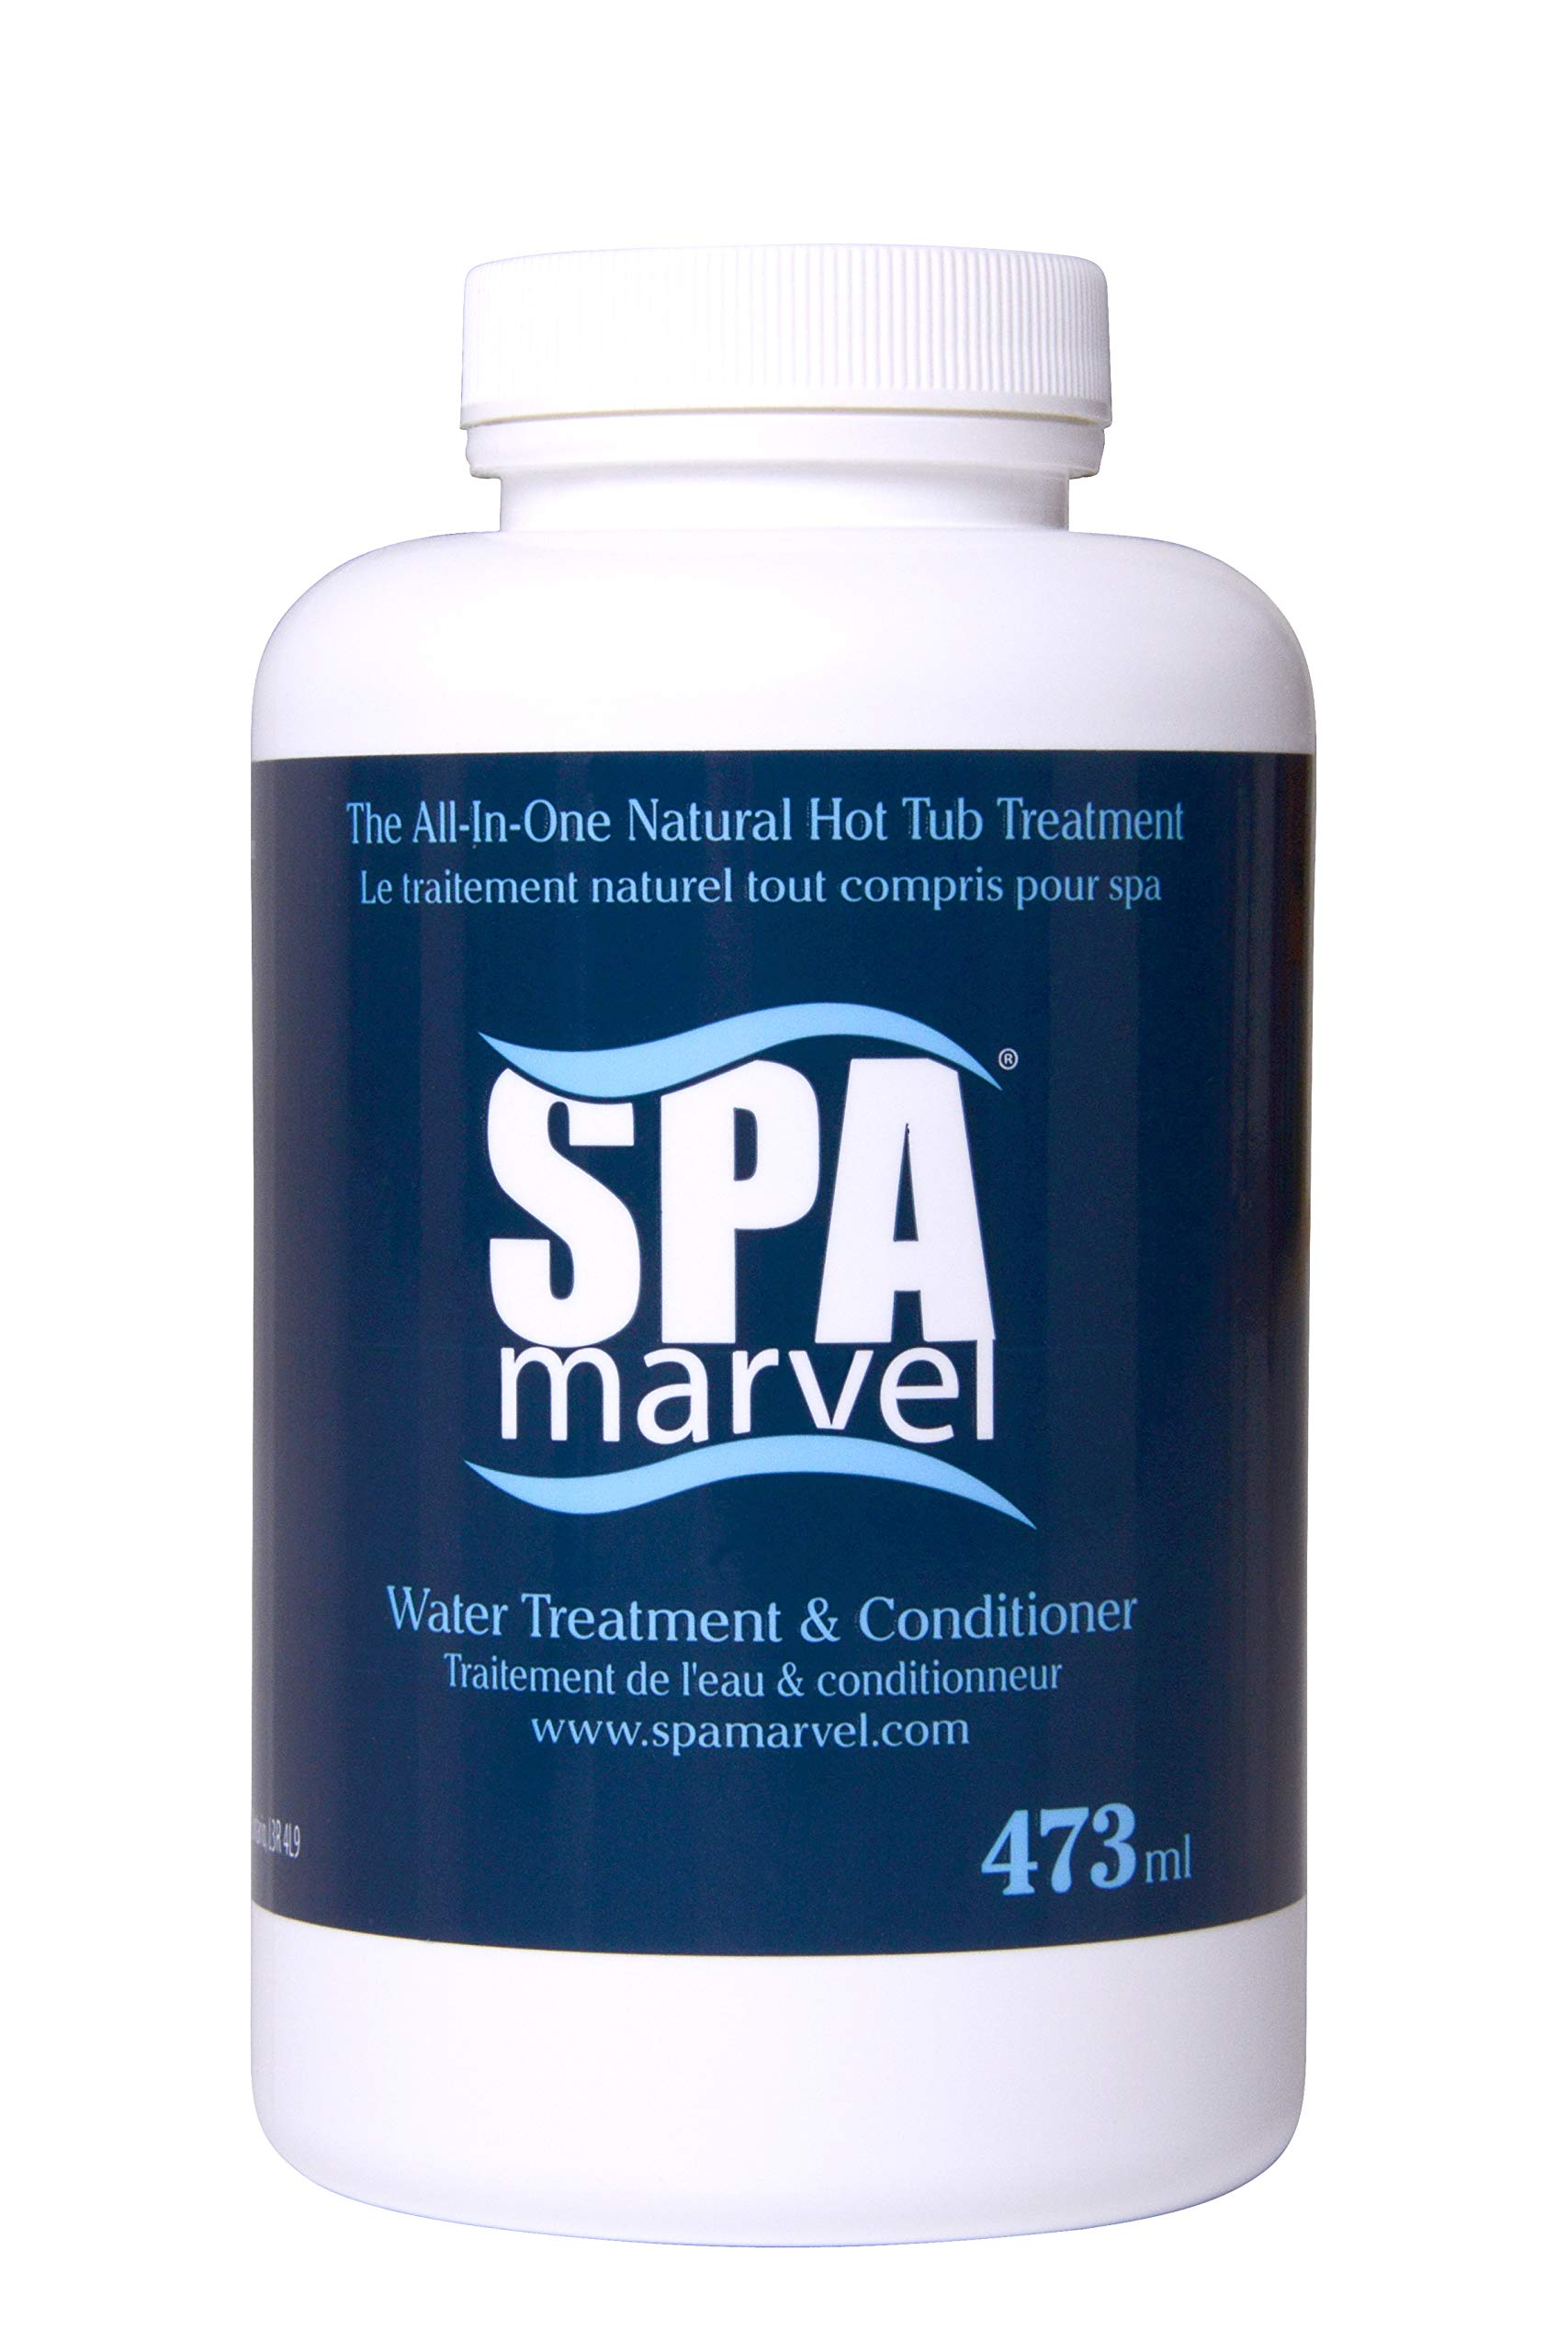 Spa Marvel Water Treatment & Conditioner product image